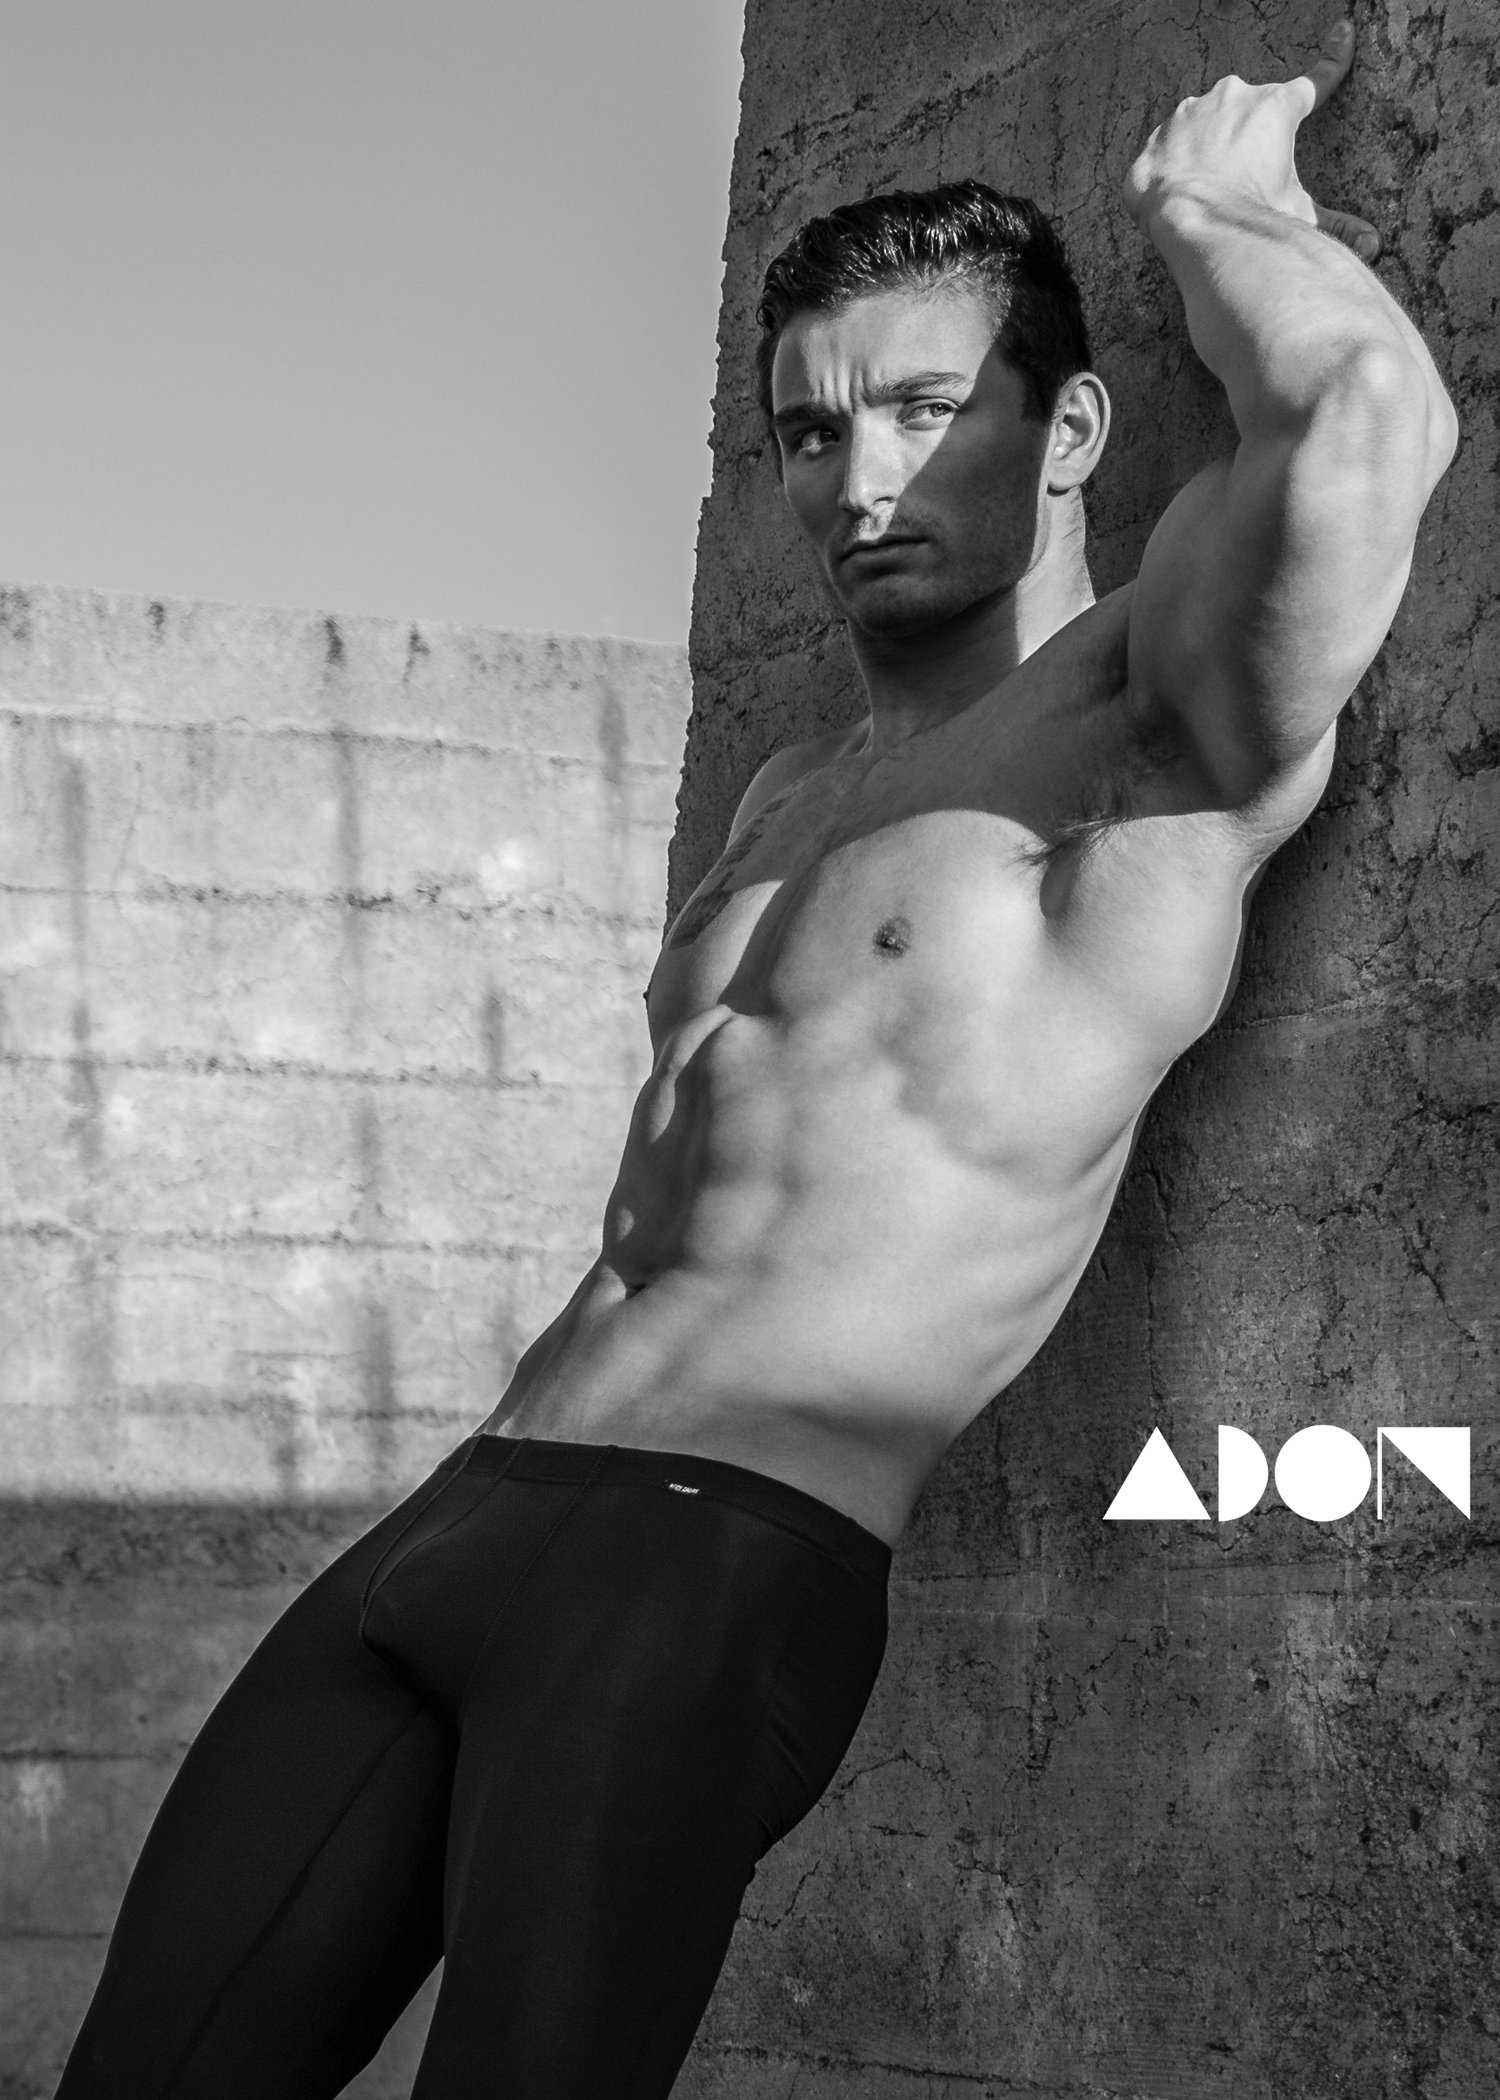 Adon Exclusive: Model Nathan Linenberger By Christopher Scott